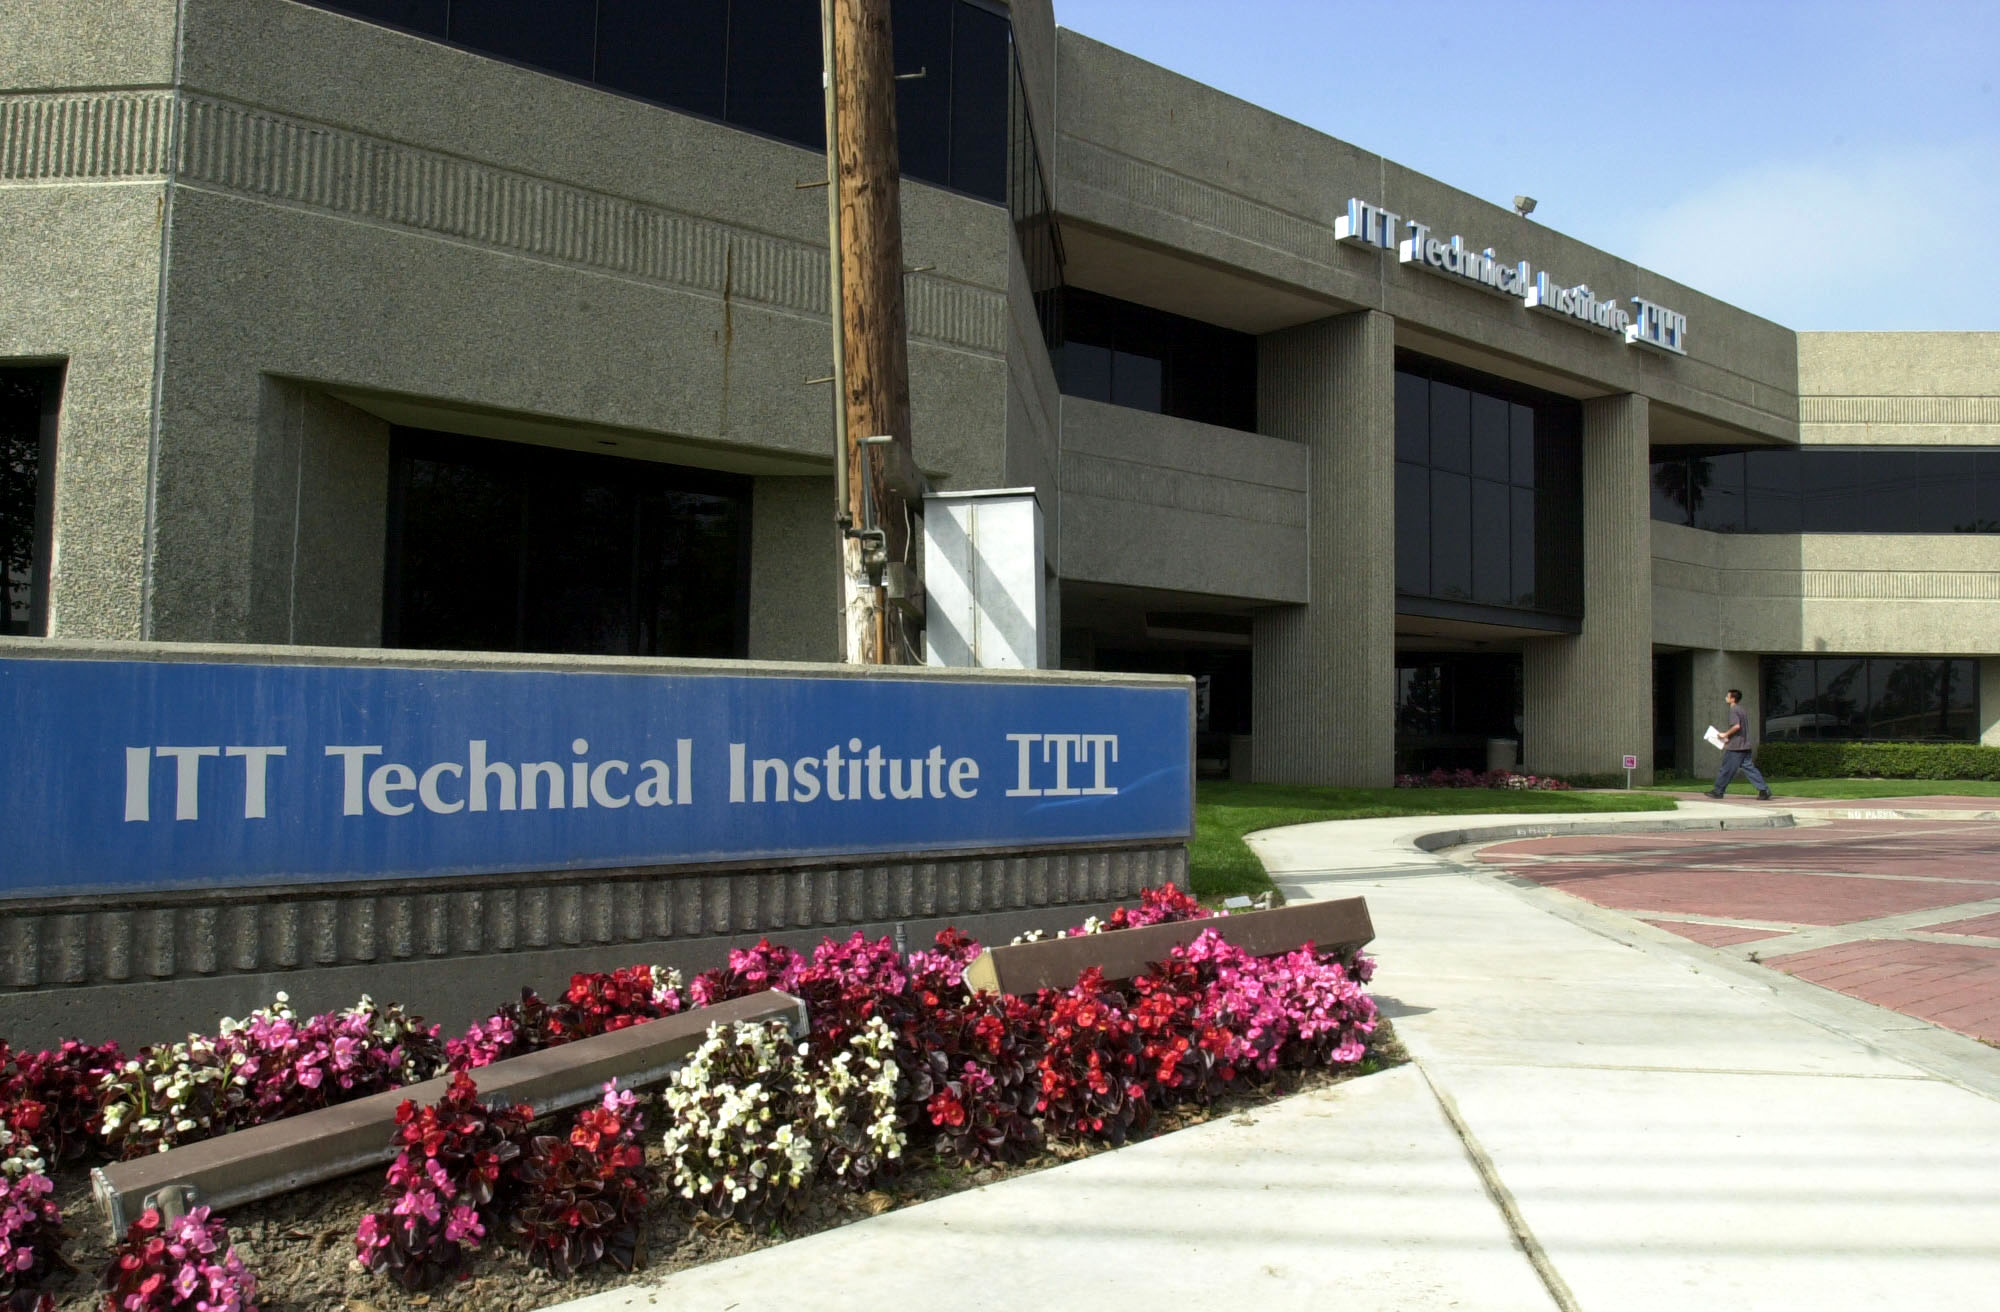 This is the campus of ITT Technical Institute in Anaheim, Ca